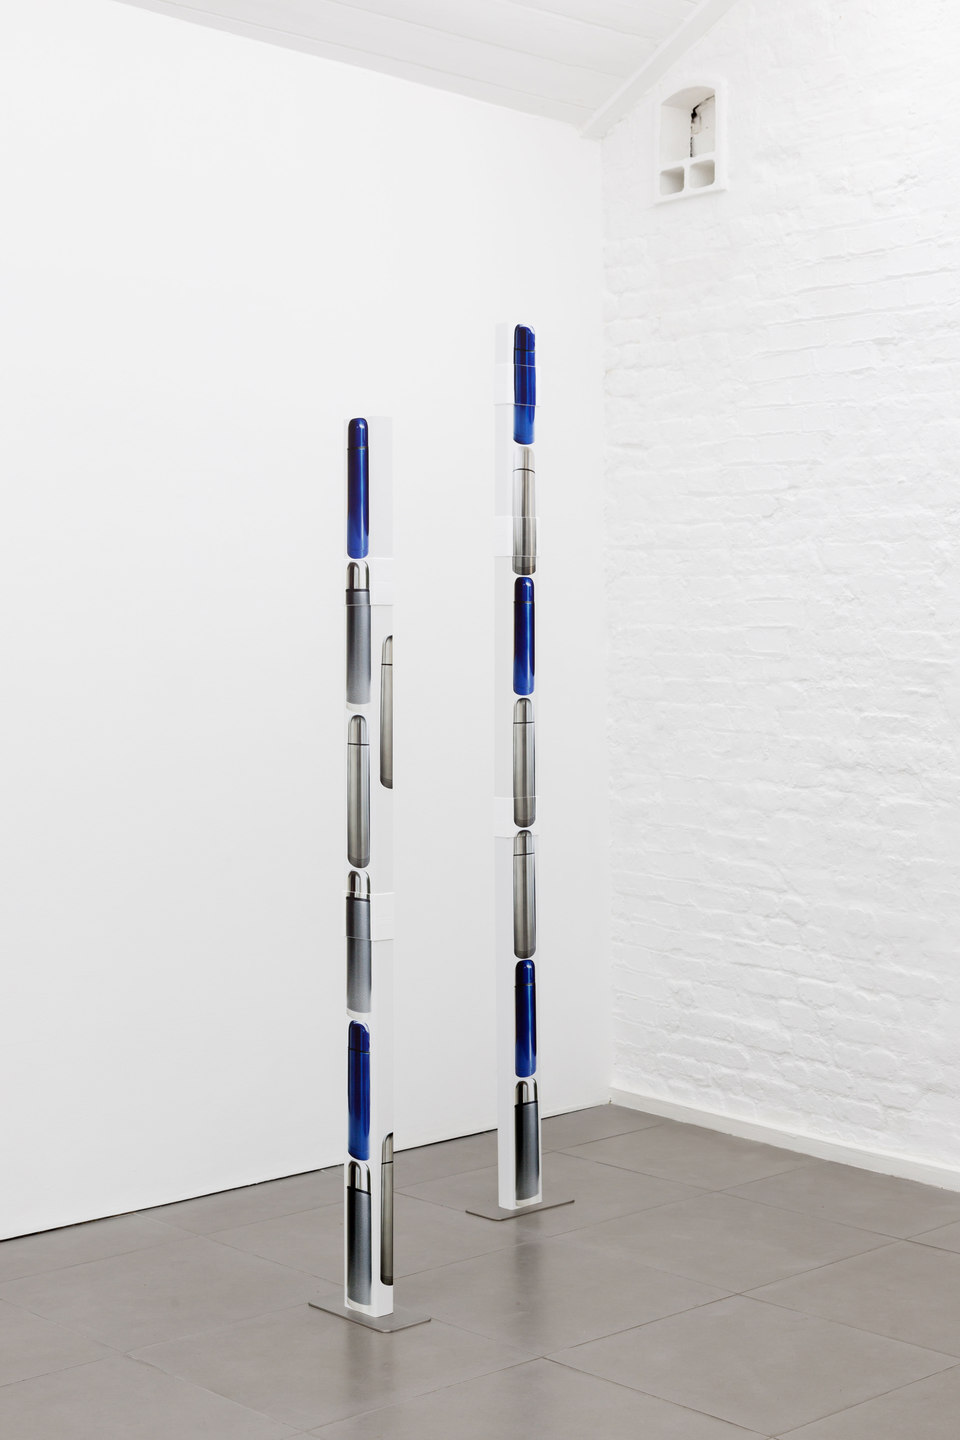 Marte Eknæs, Reboot Horizon, 'Arranged for Effect (column) I', 2012, ventilation tubes with stickers, steel foot, Cell Project Space